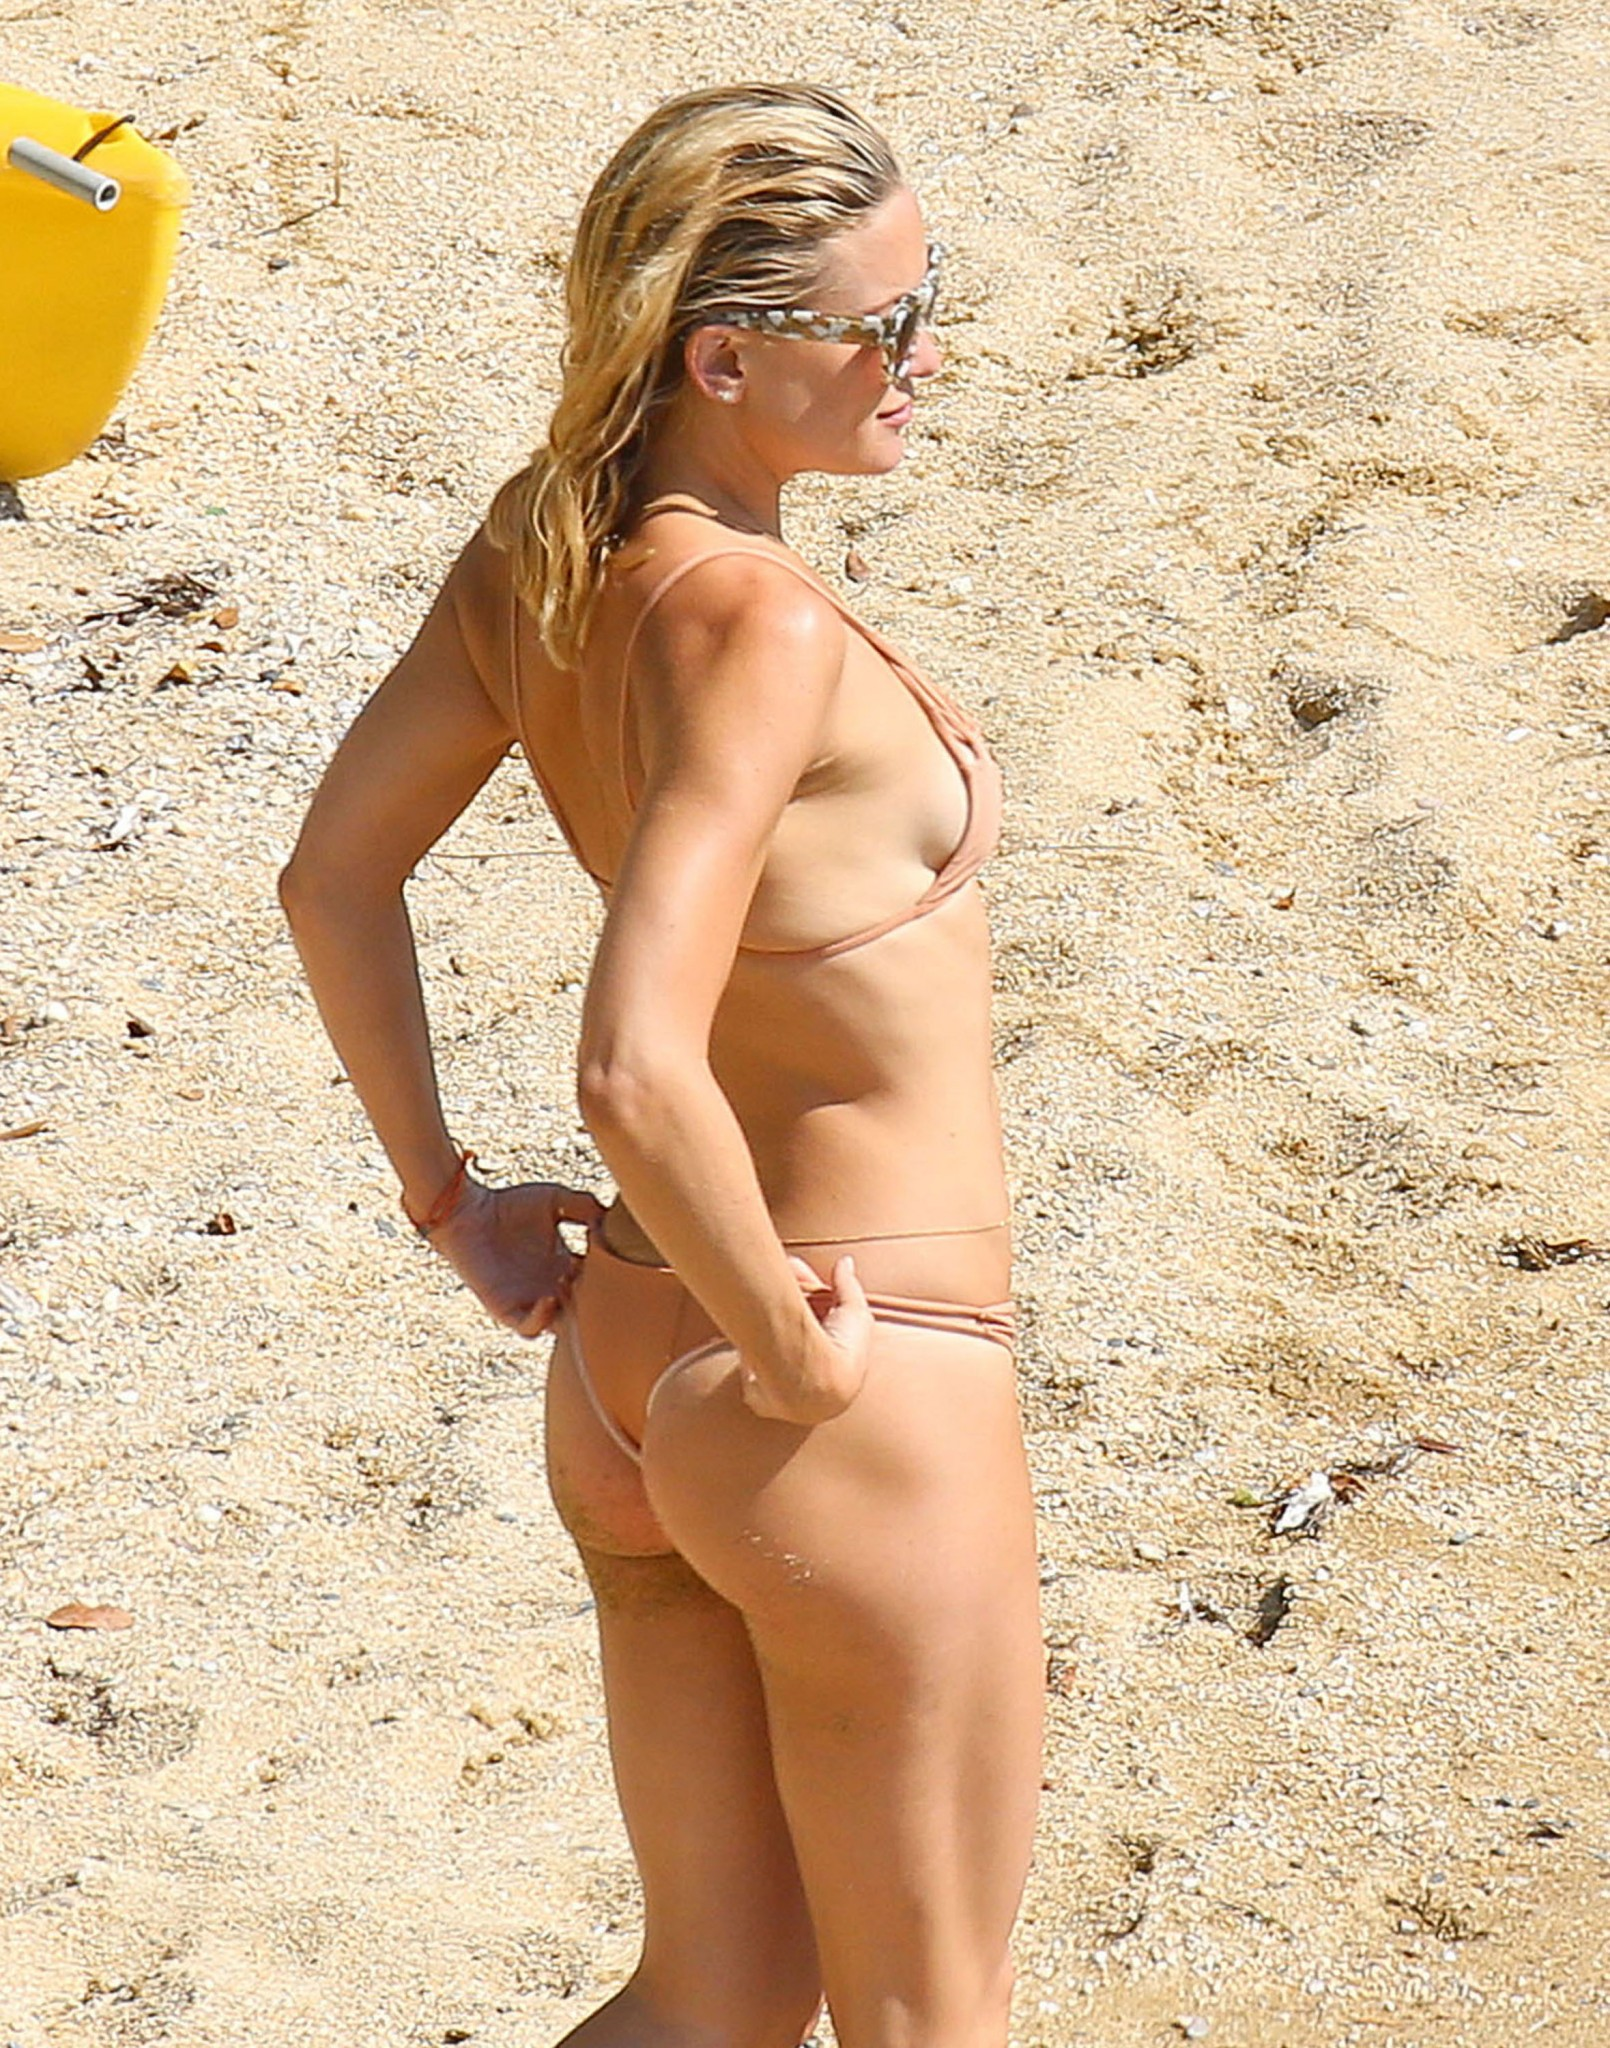 kate-hudson-bikini-greece-2